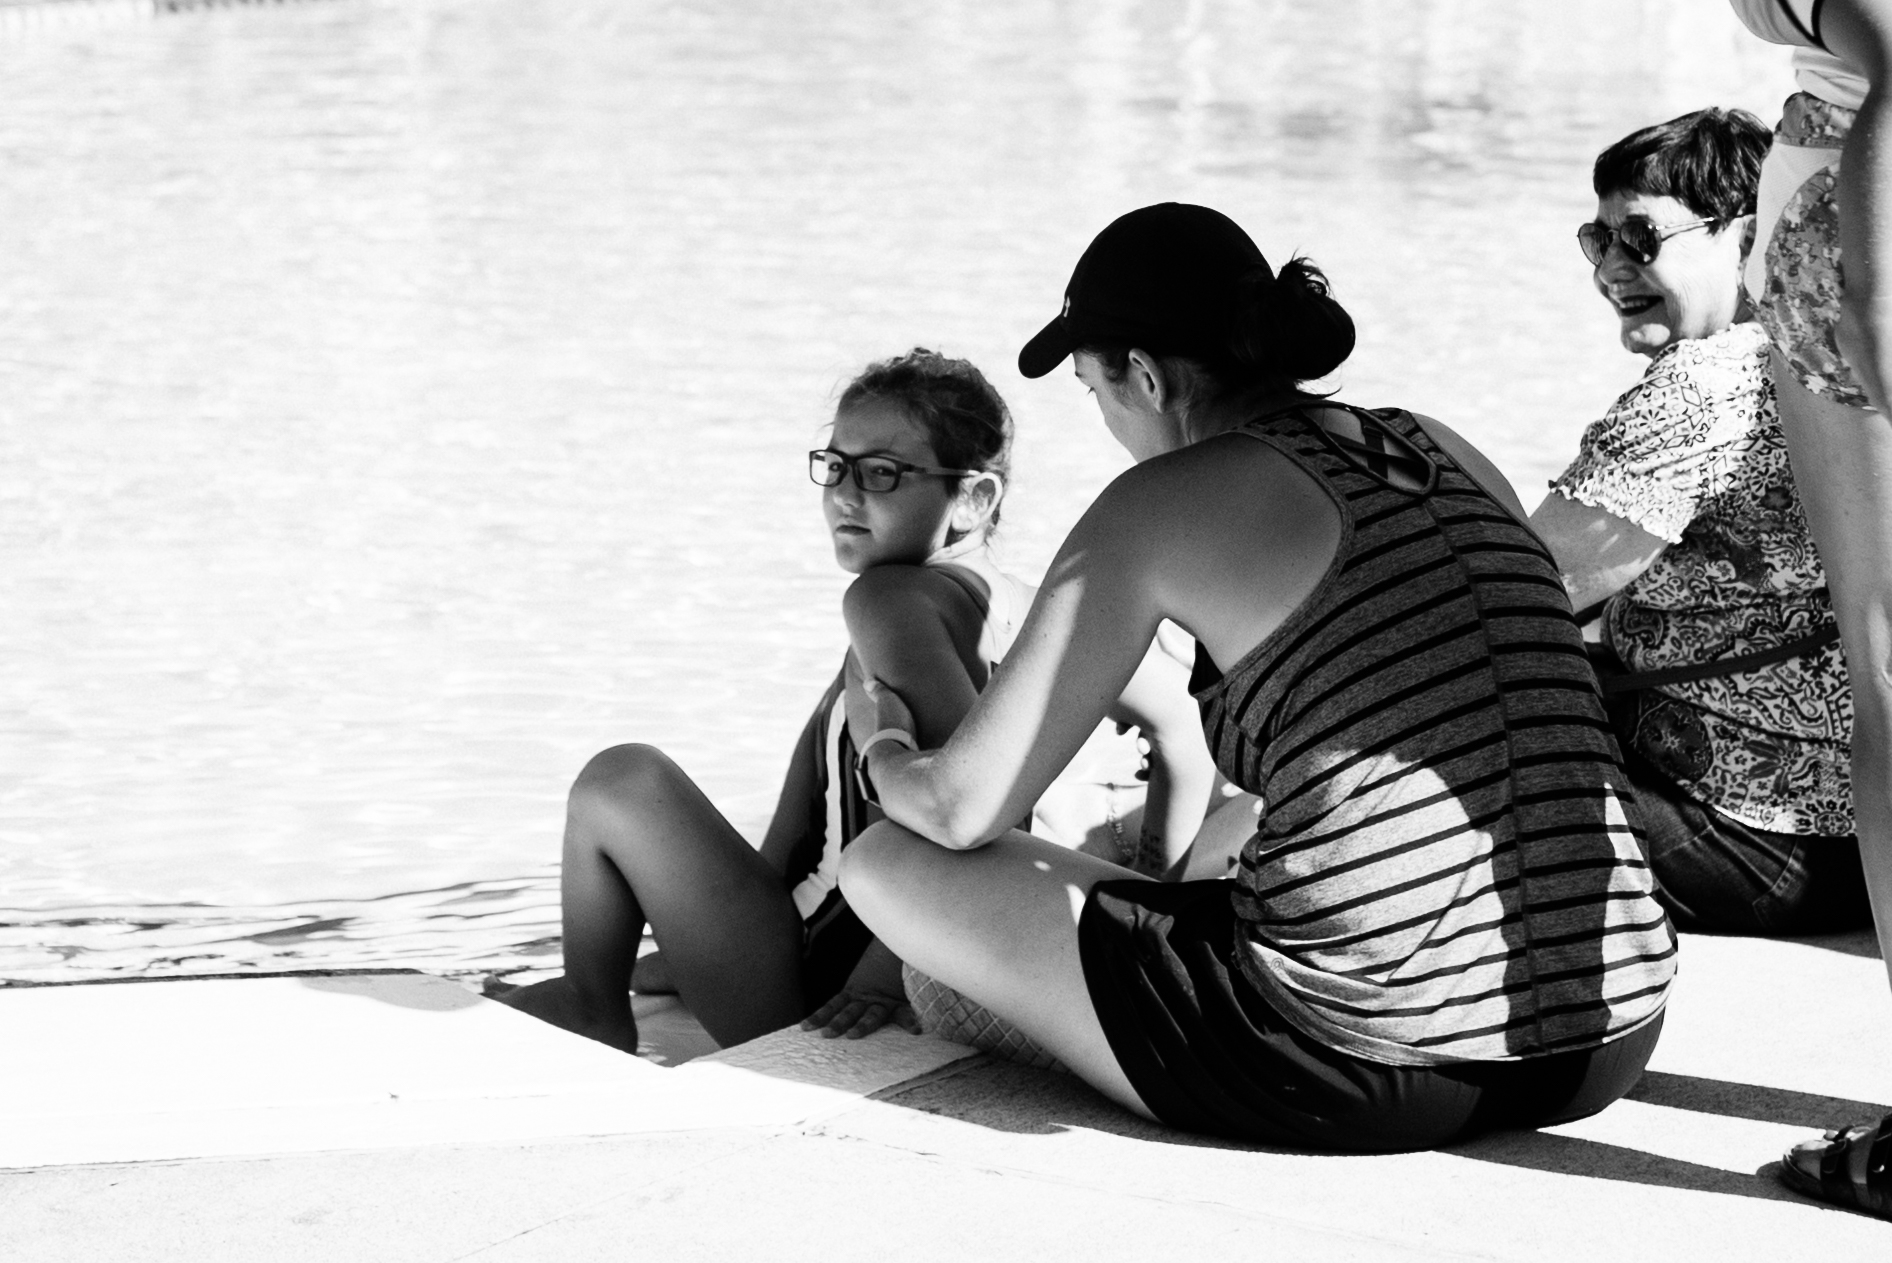 Water's Edge. Caroline King and her mom Morgan King soak in the day.